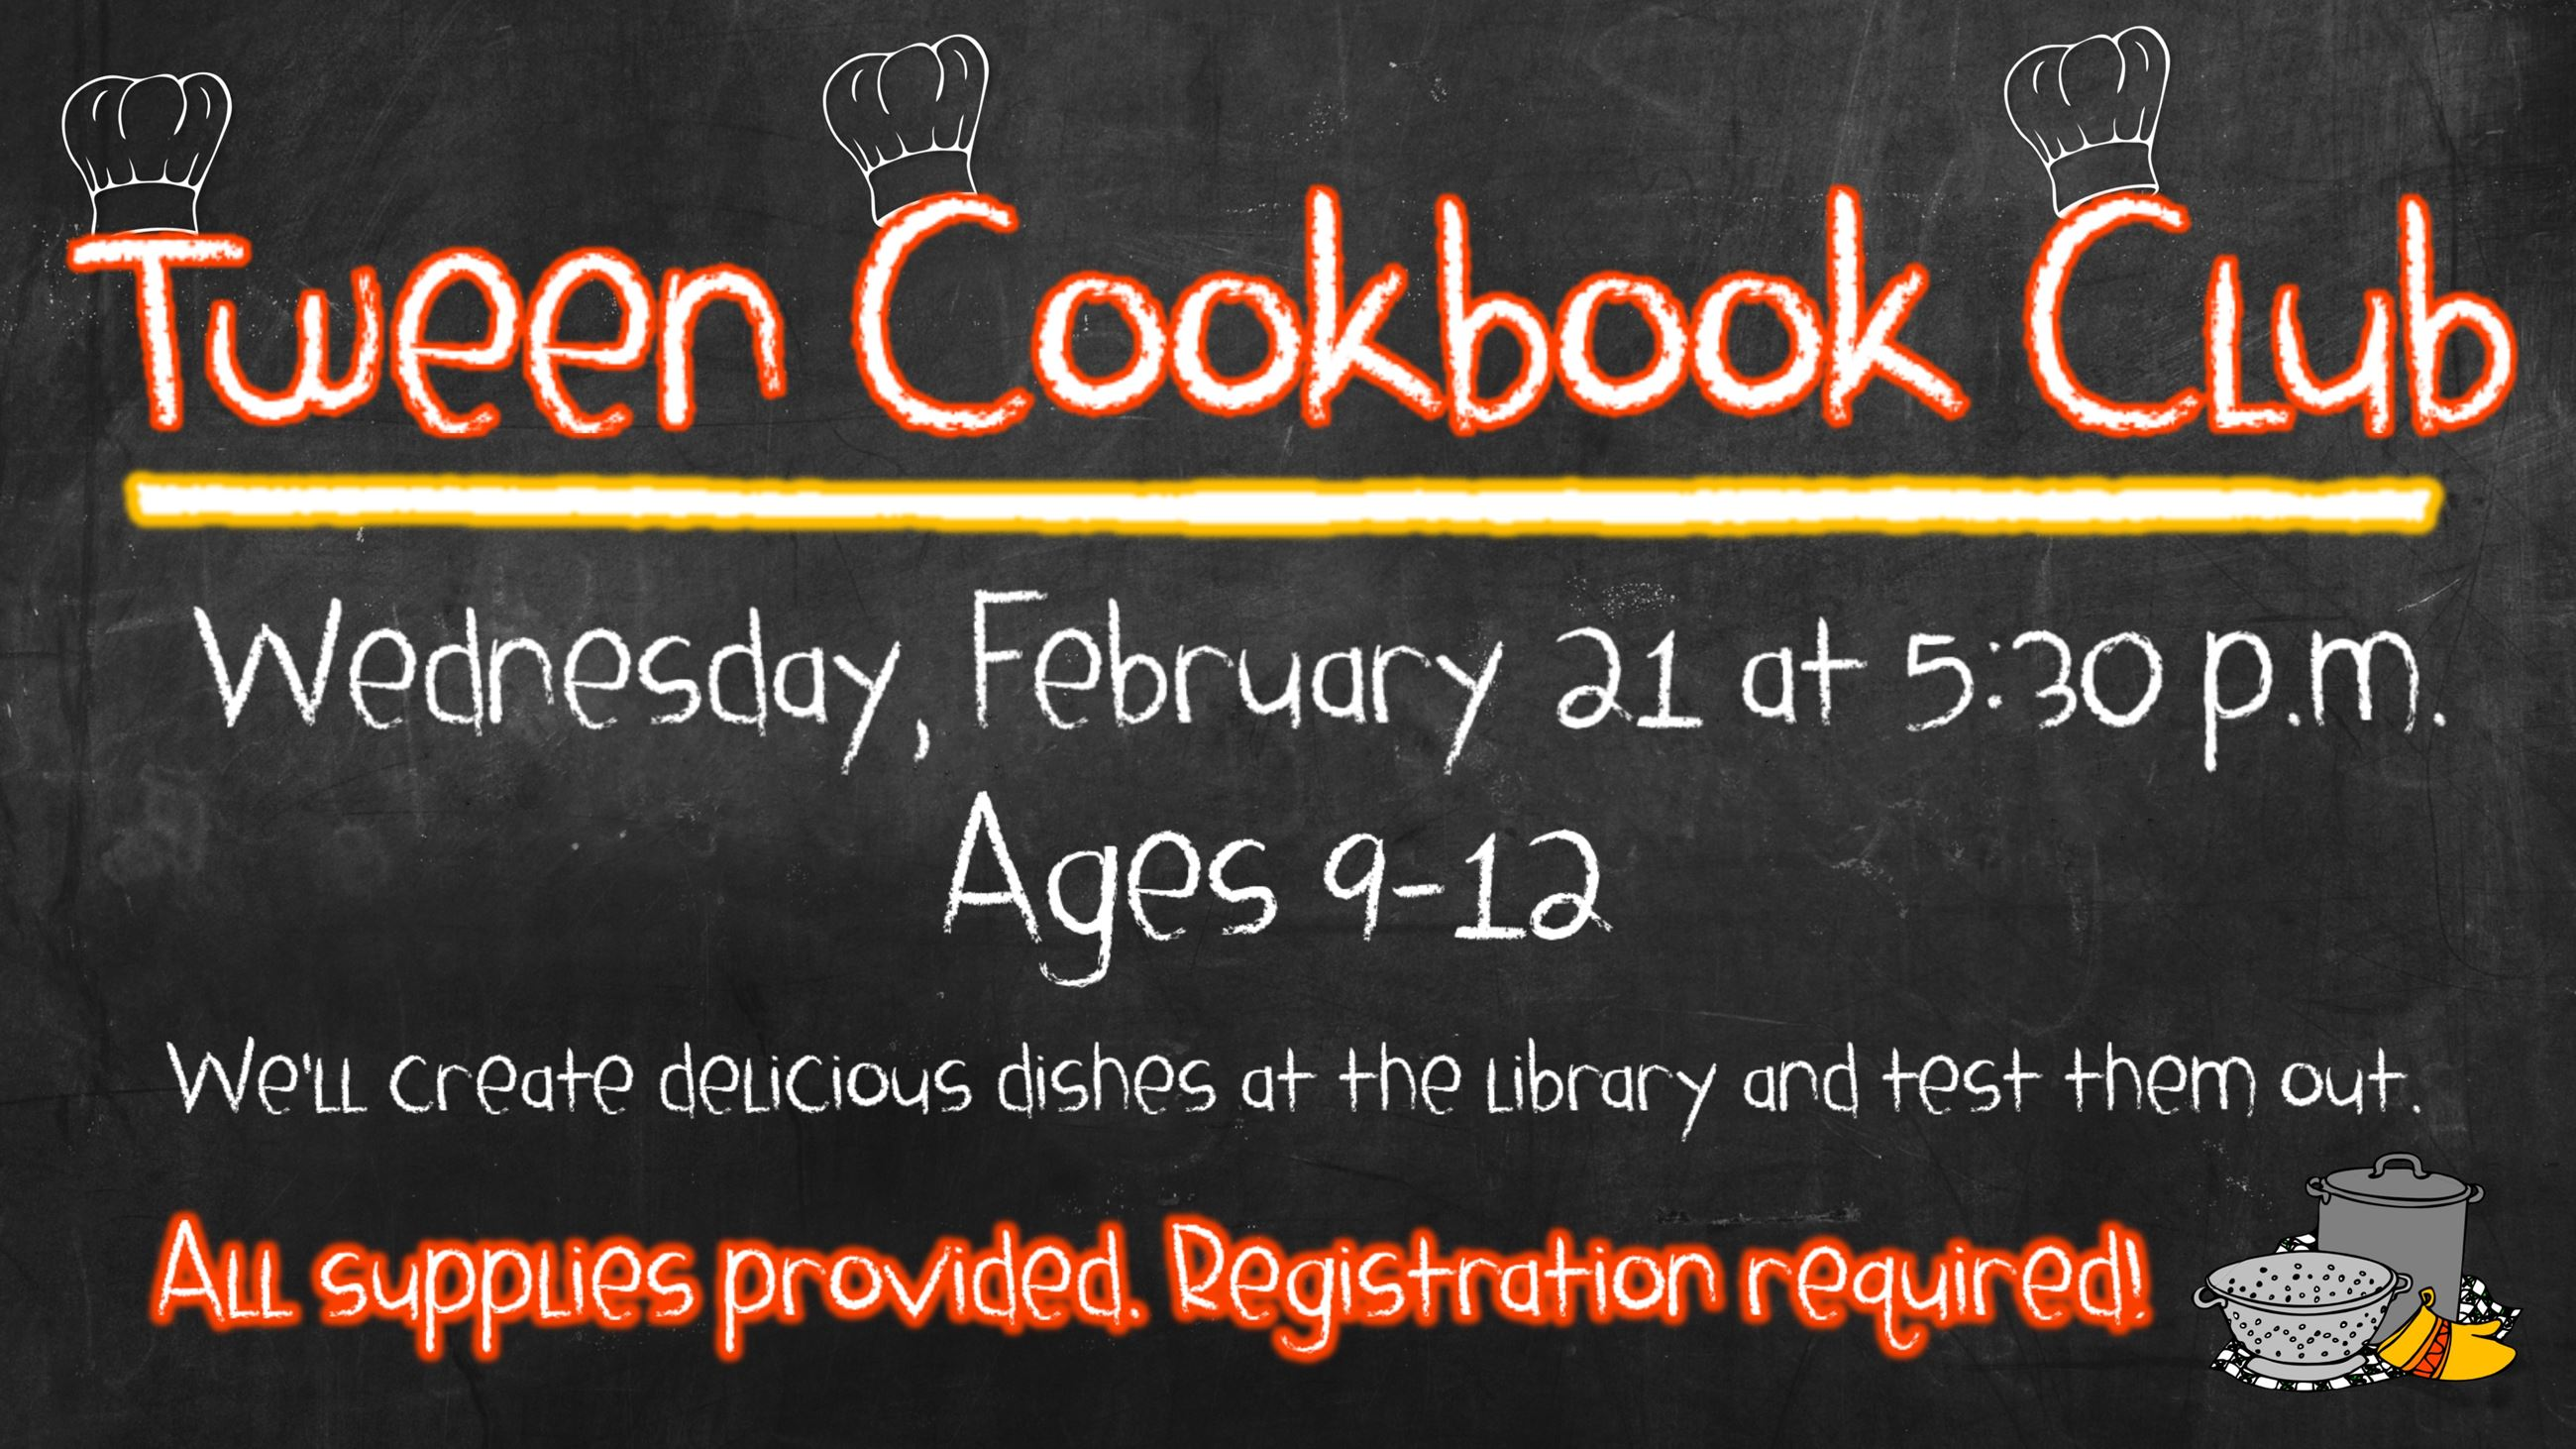 FebTween Cookbook Club